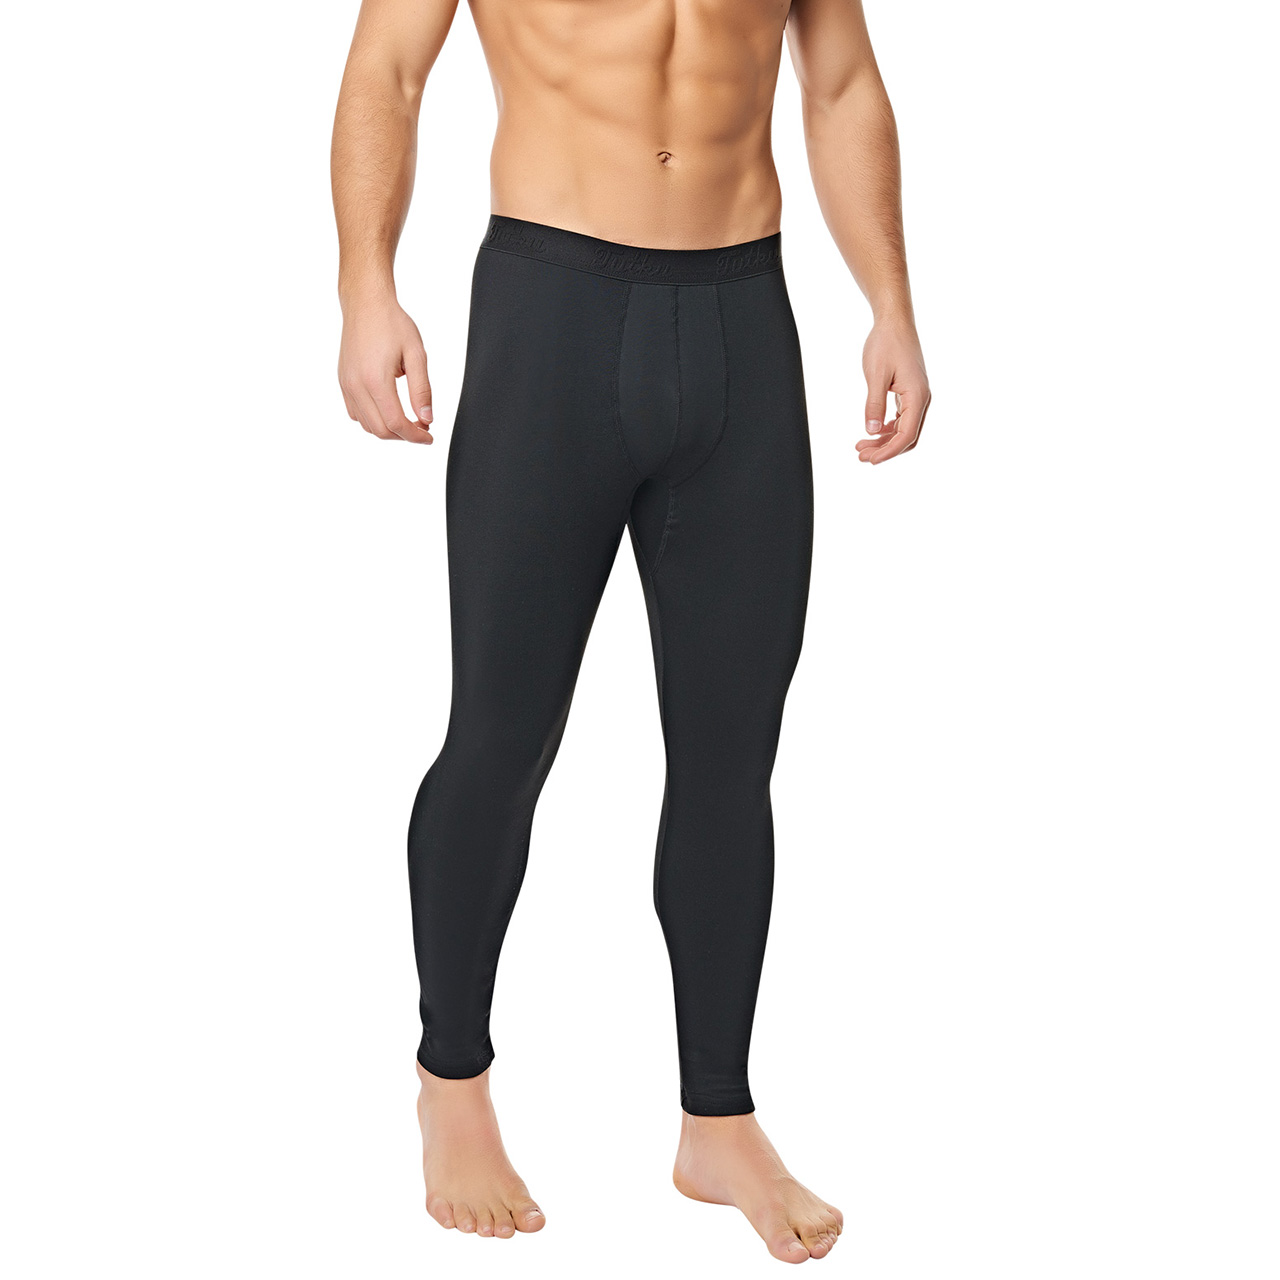 Passion Thermal Tights